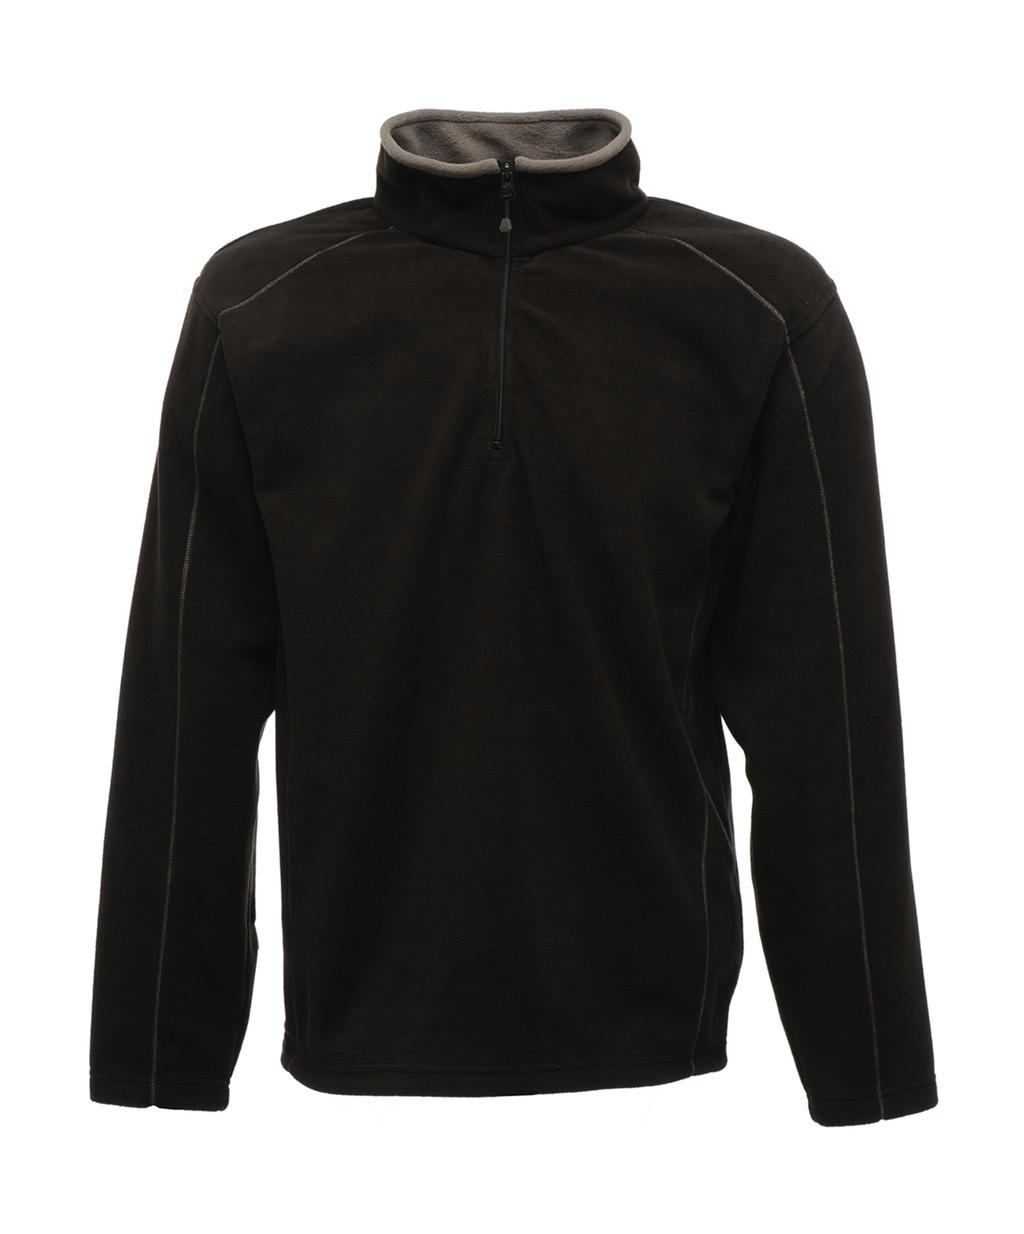 Ashville Half Zip Fleece Black/Smokey Noir